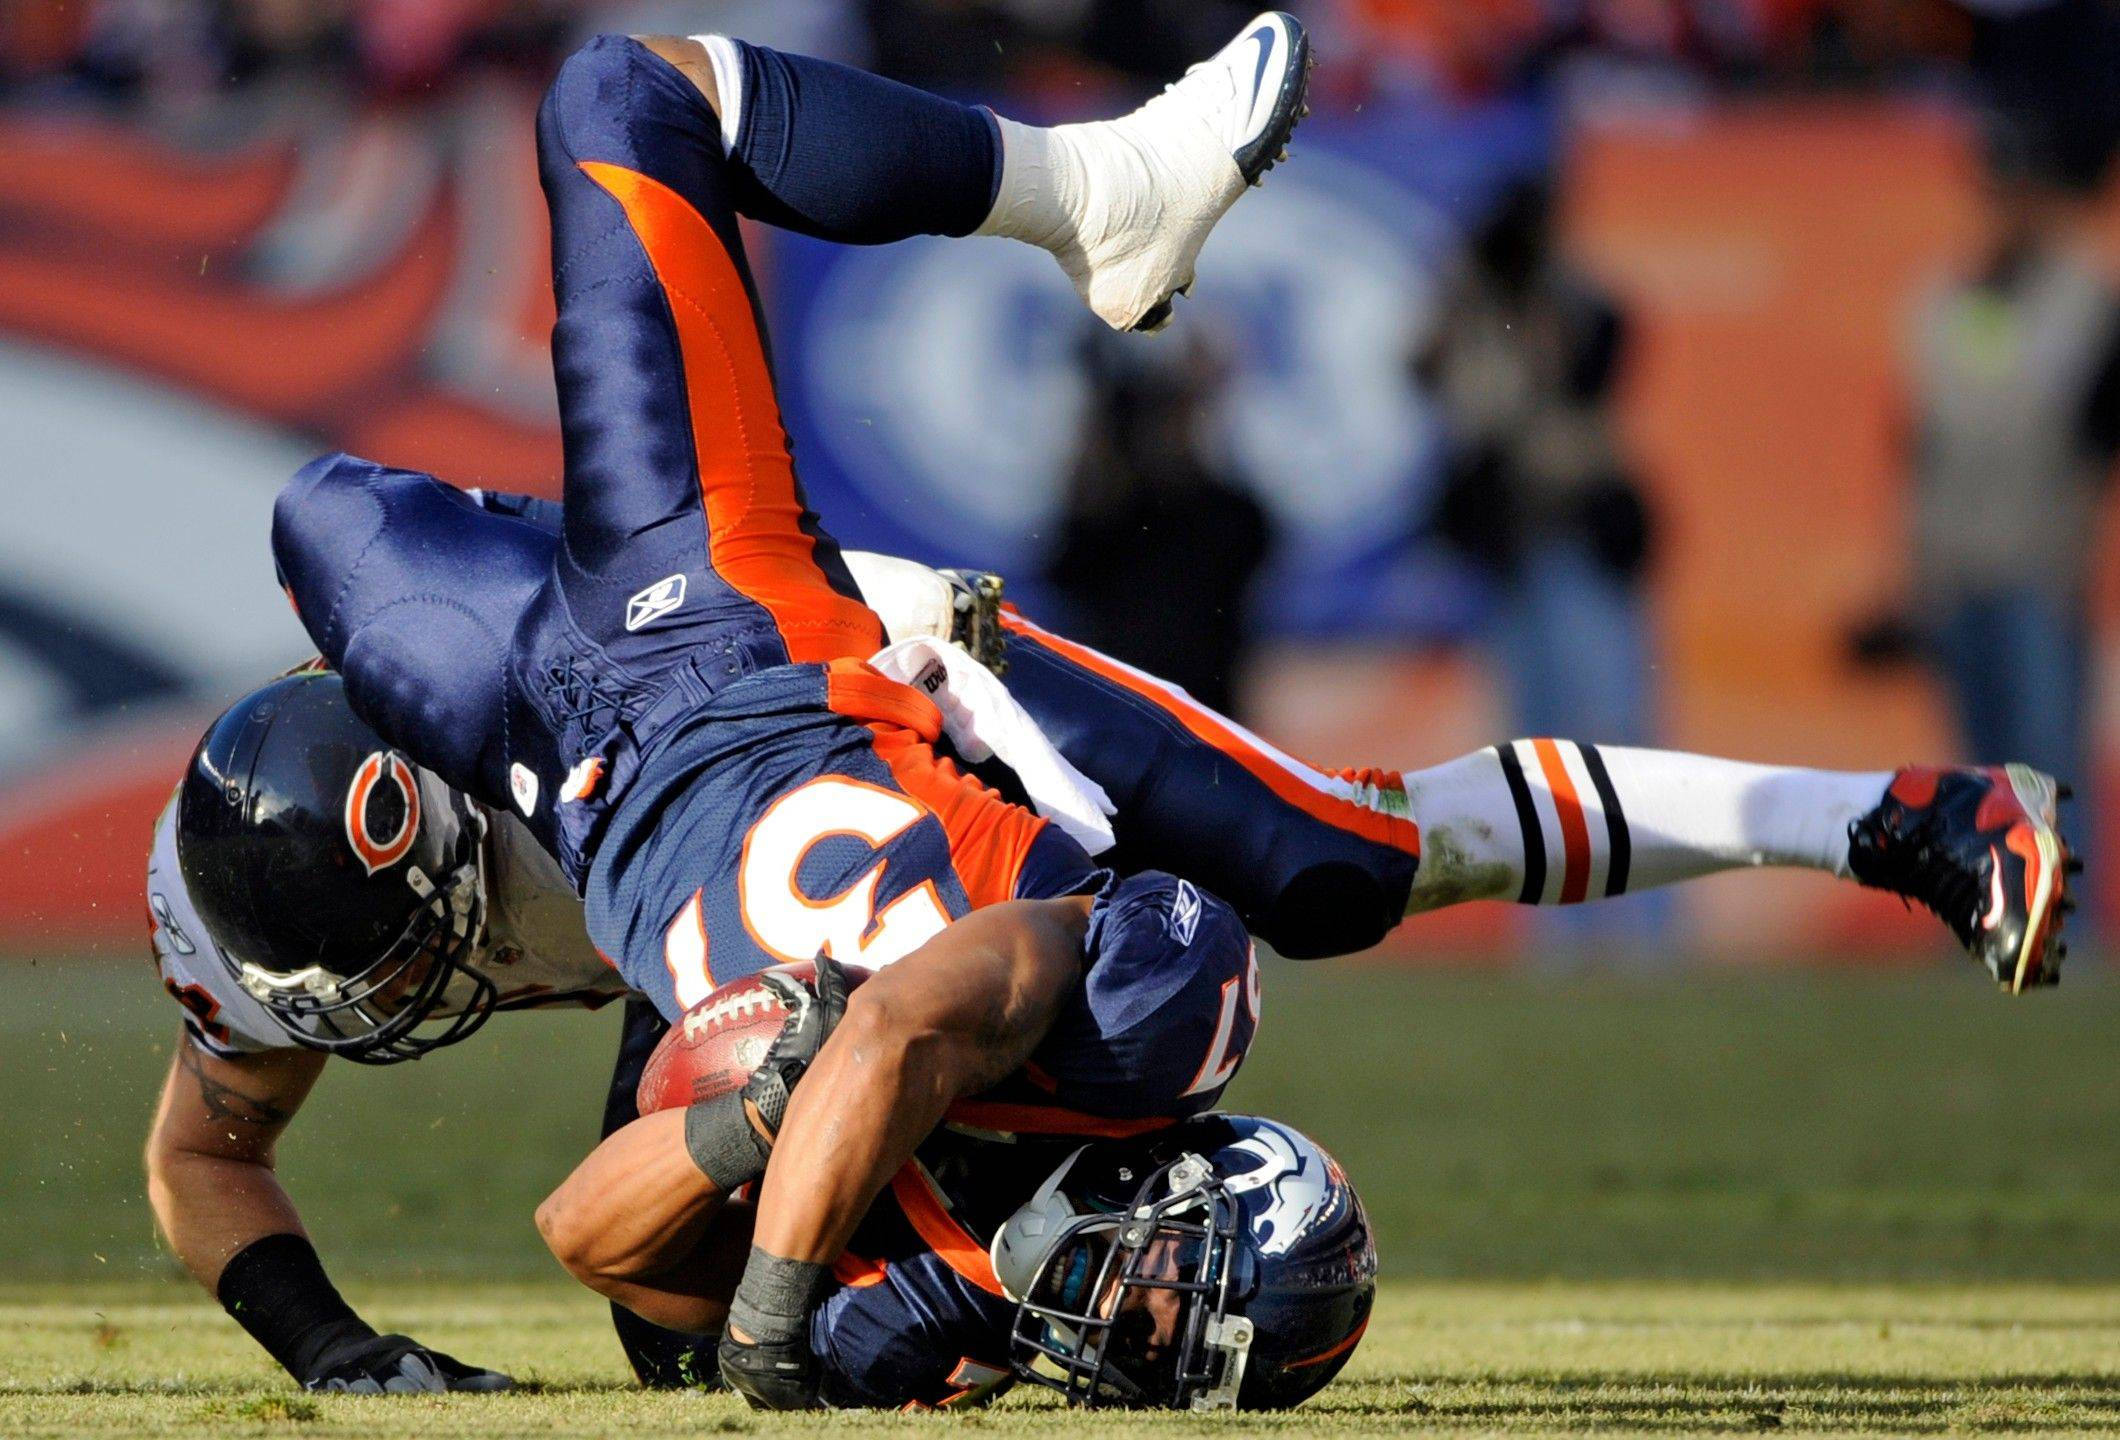 Denver Broncos running back Jeremiah Johnson (37) is upended by Chicago Bears' Brian Urlacher, left, during the second quarter.